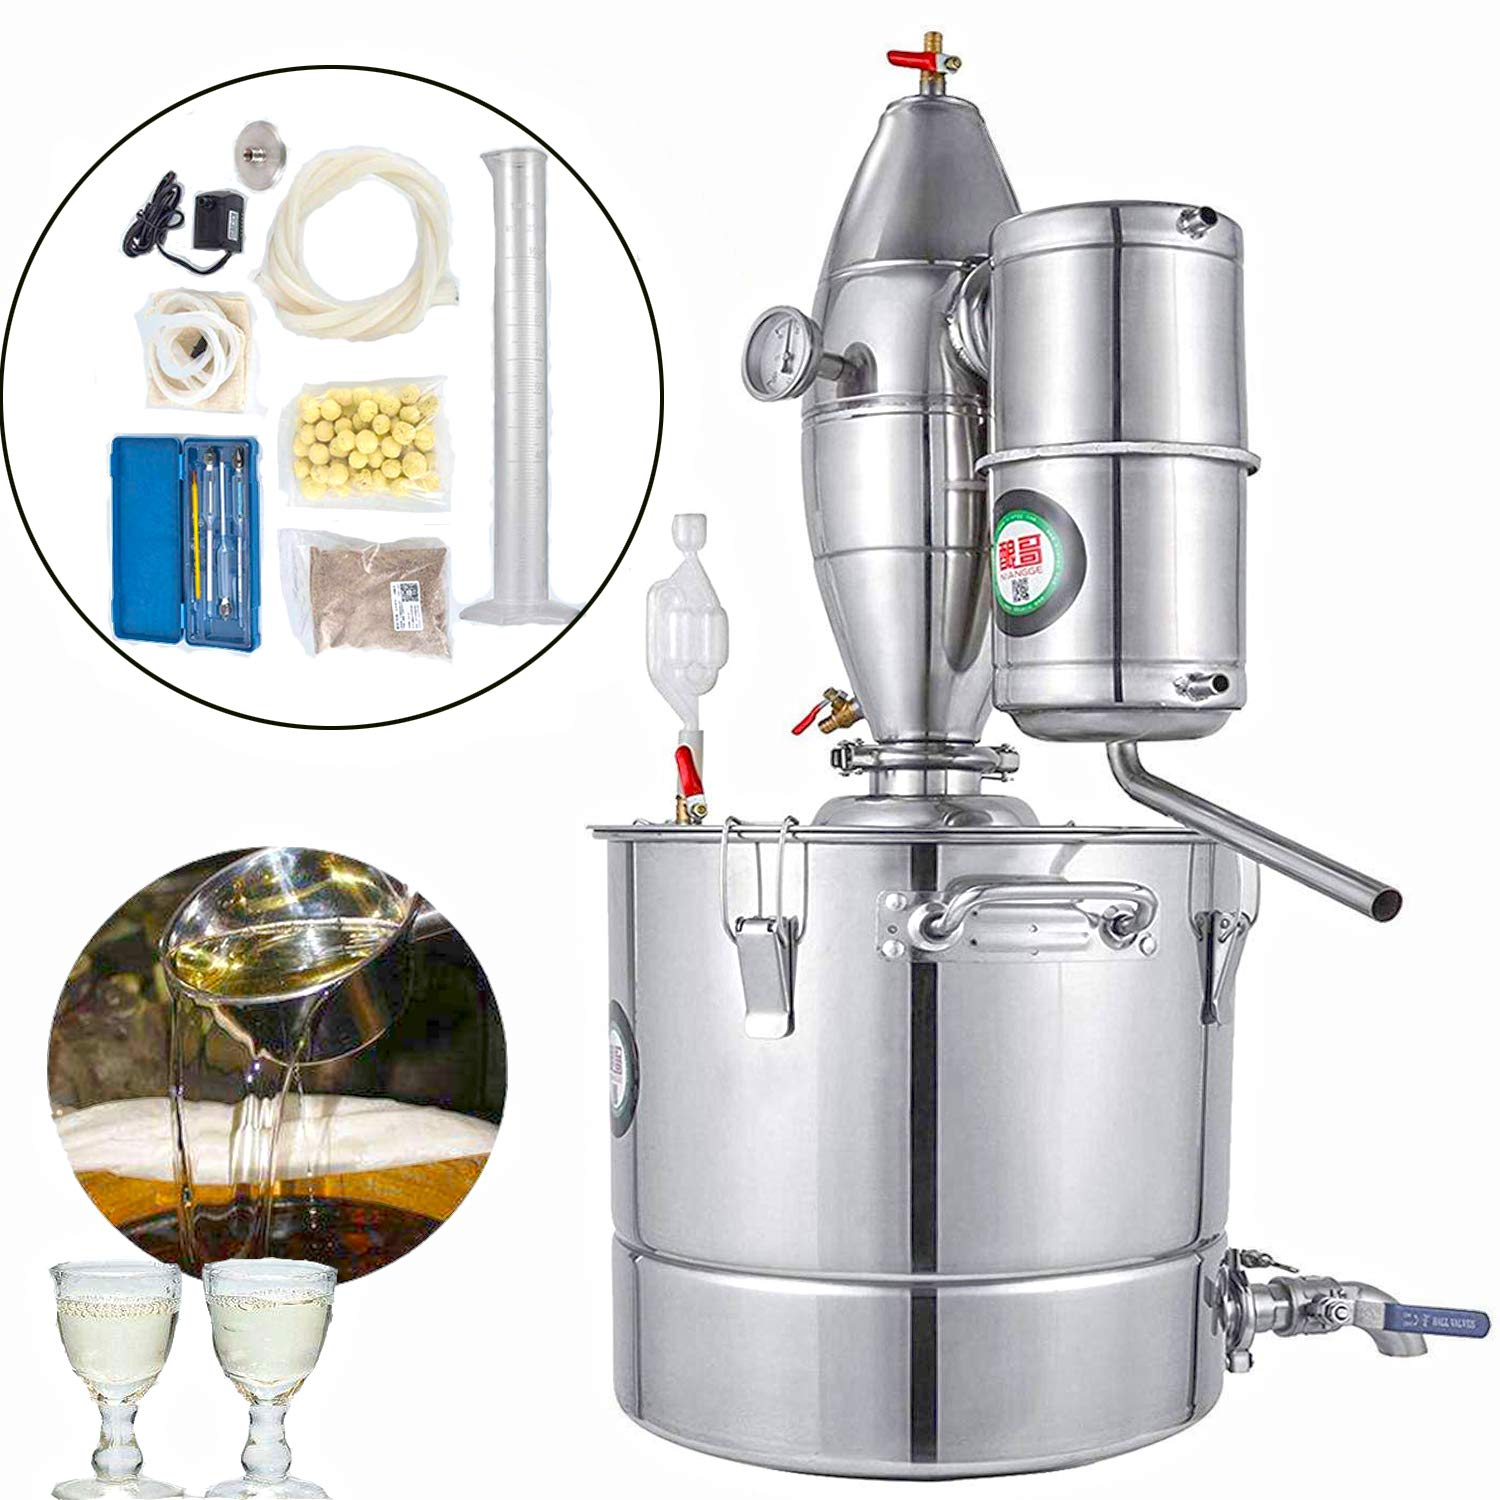 BestEquip 7.9Gal Home Water Alcohol Distiller 30L 304 Stainless Steel Distiller Moonshine Wine Making Kit with Thermometer for Home Brewing (7.9Gal 30L) by BestEquip